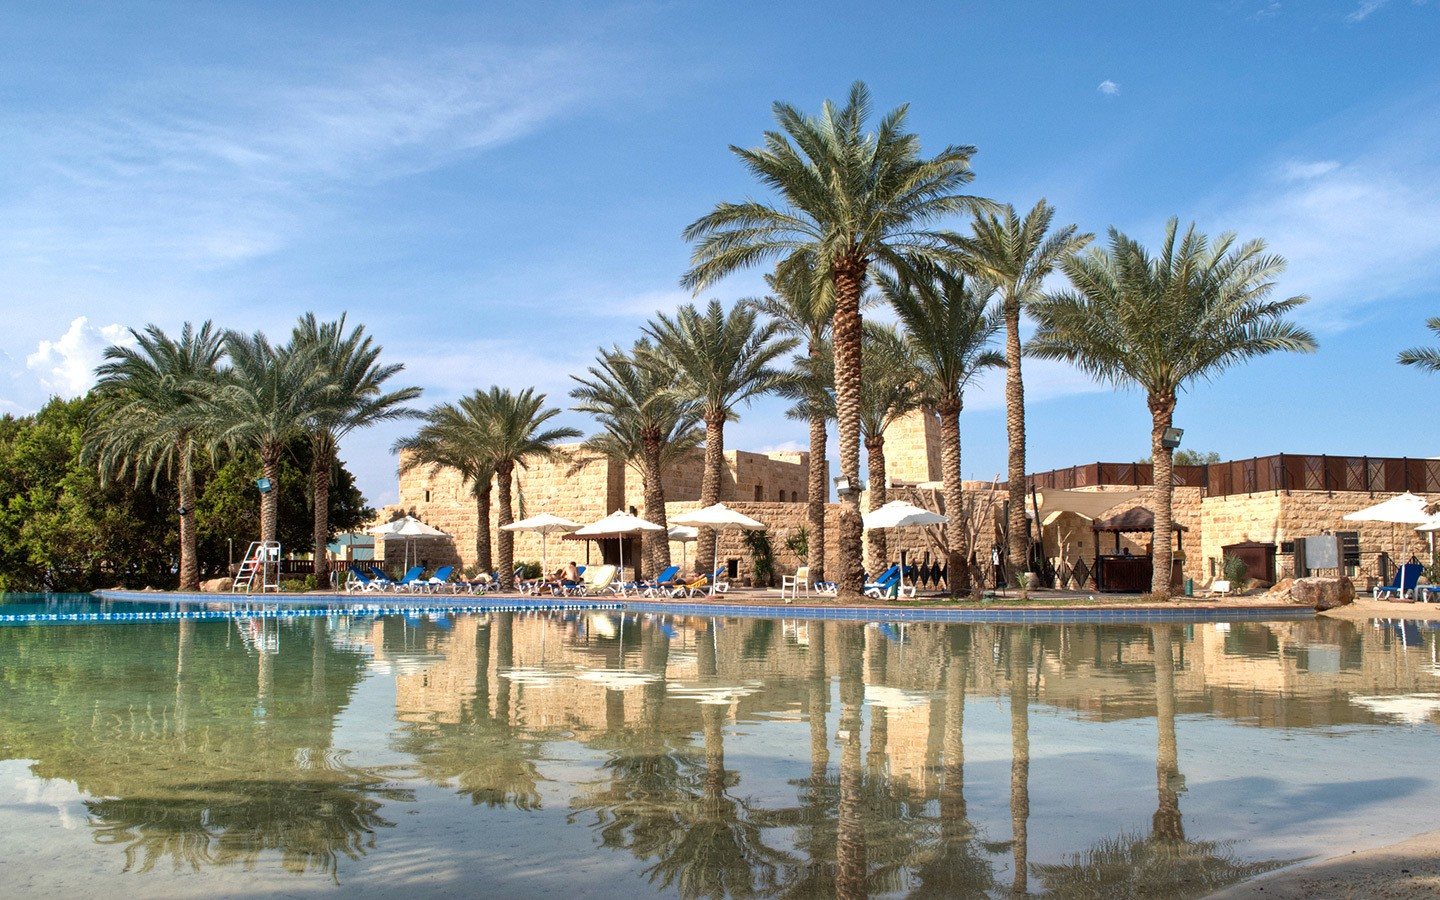 Mövenpick Dead Sea Resort & Spa in Jordan